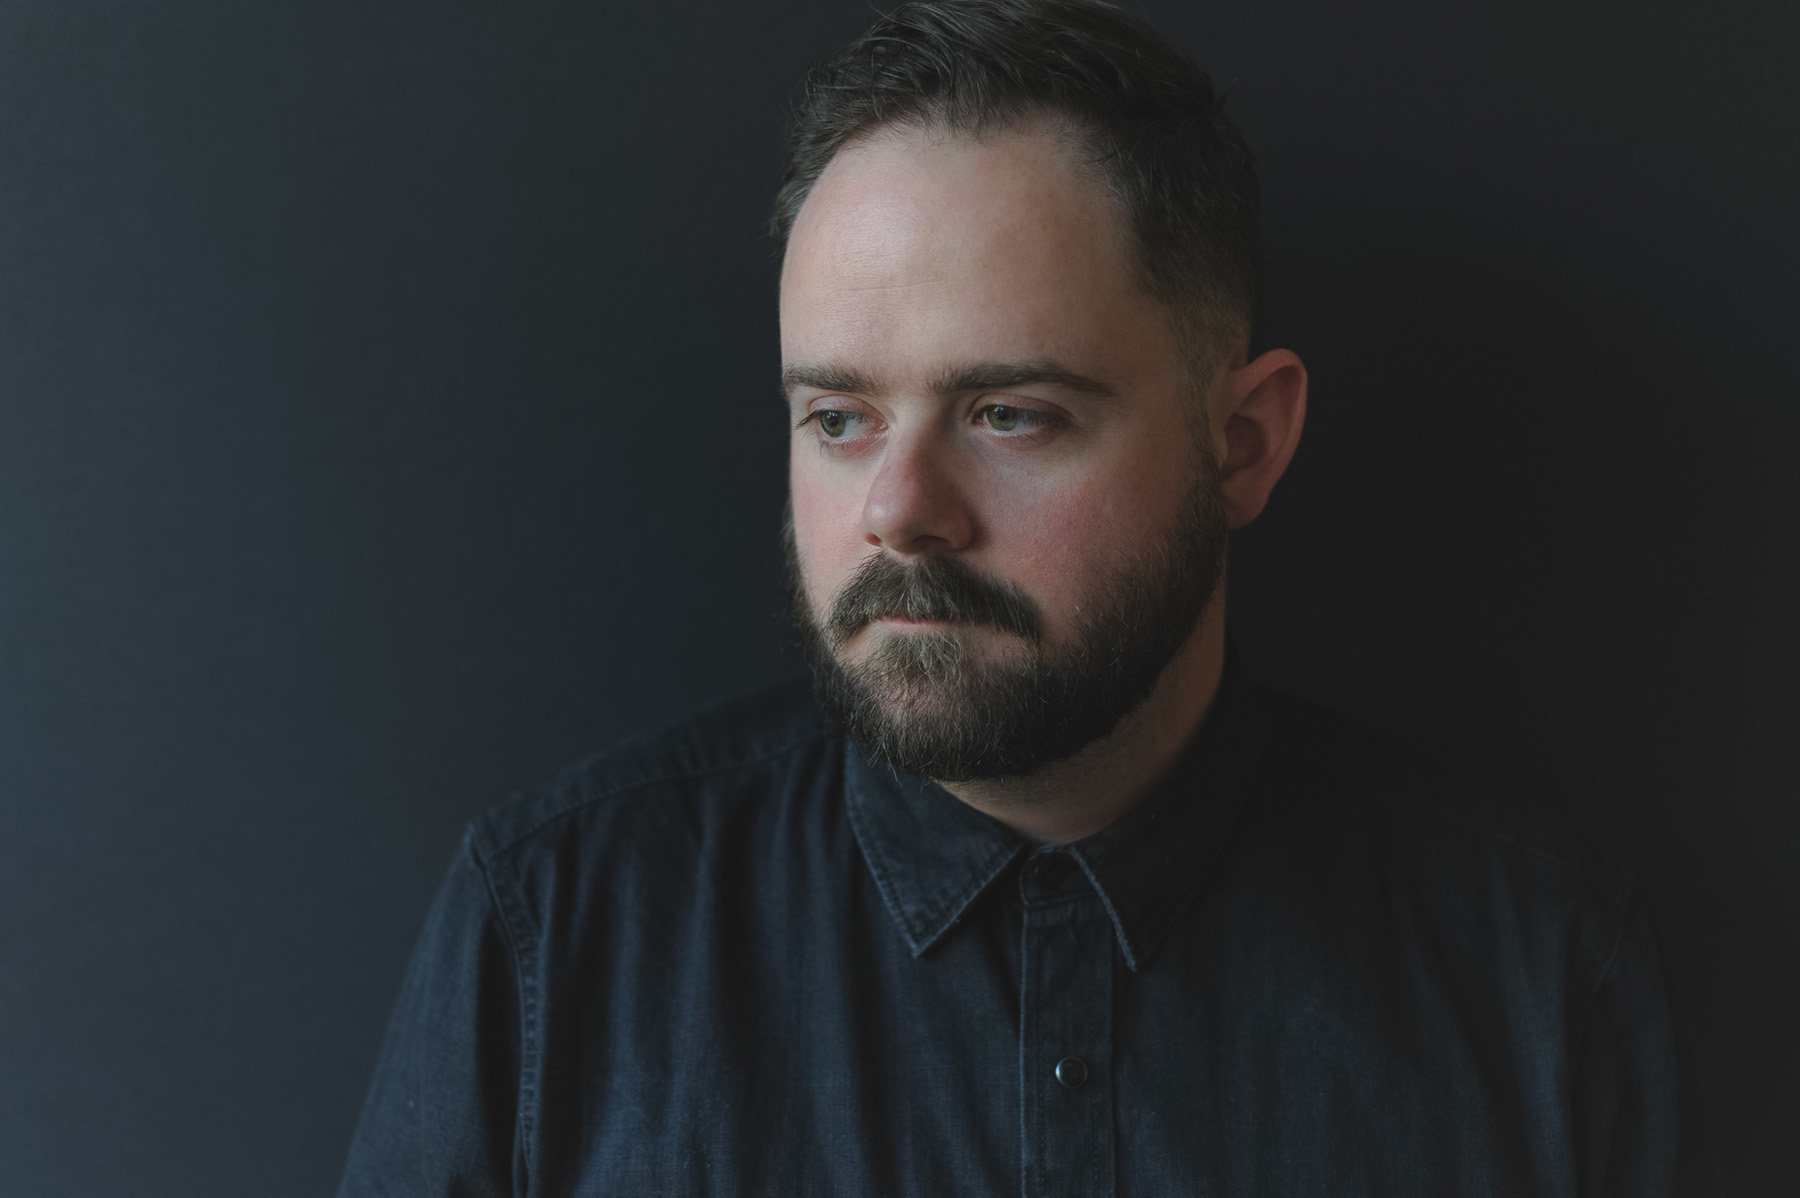 a portrait of Christopher on a black background wearing a black denim shirt, he has a forlorn look on his face and is looking off slightly away from the camera.